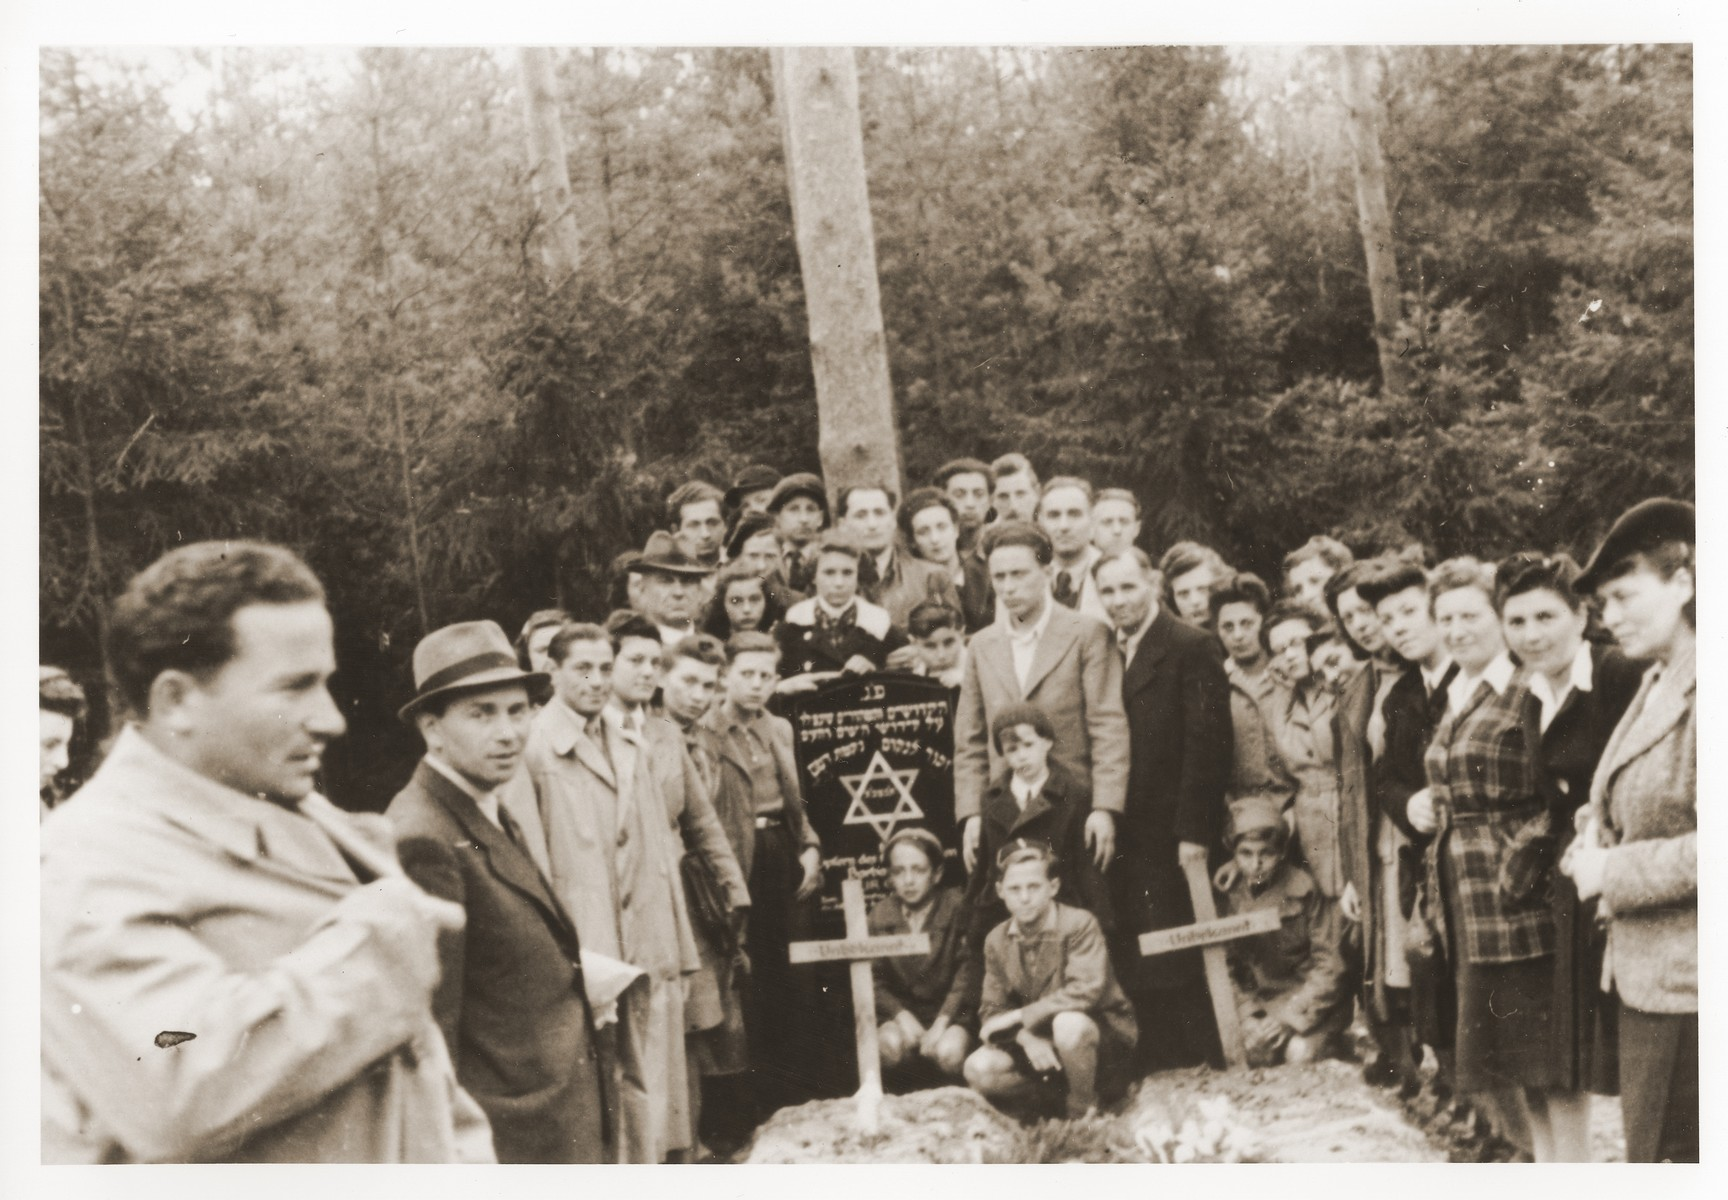 A large group of Jewish displaced persons poses next to two graves marked with wooden crosses in Lueneburg.